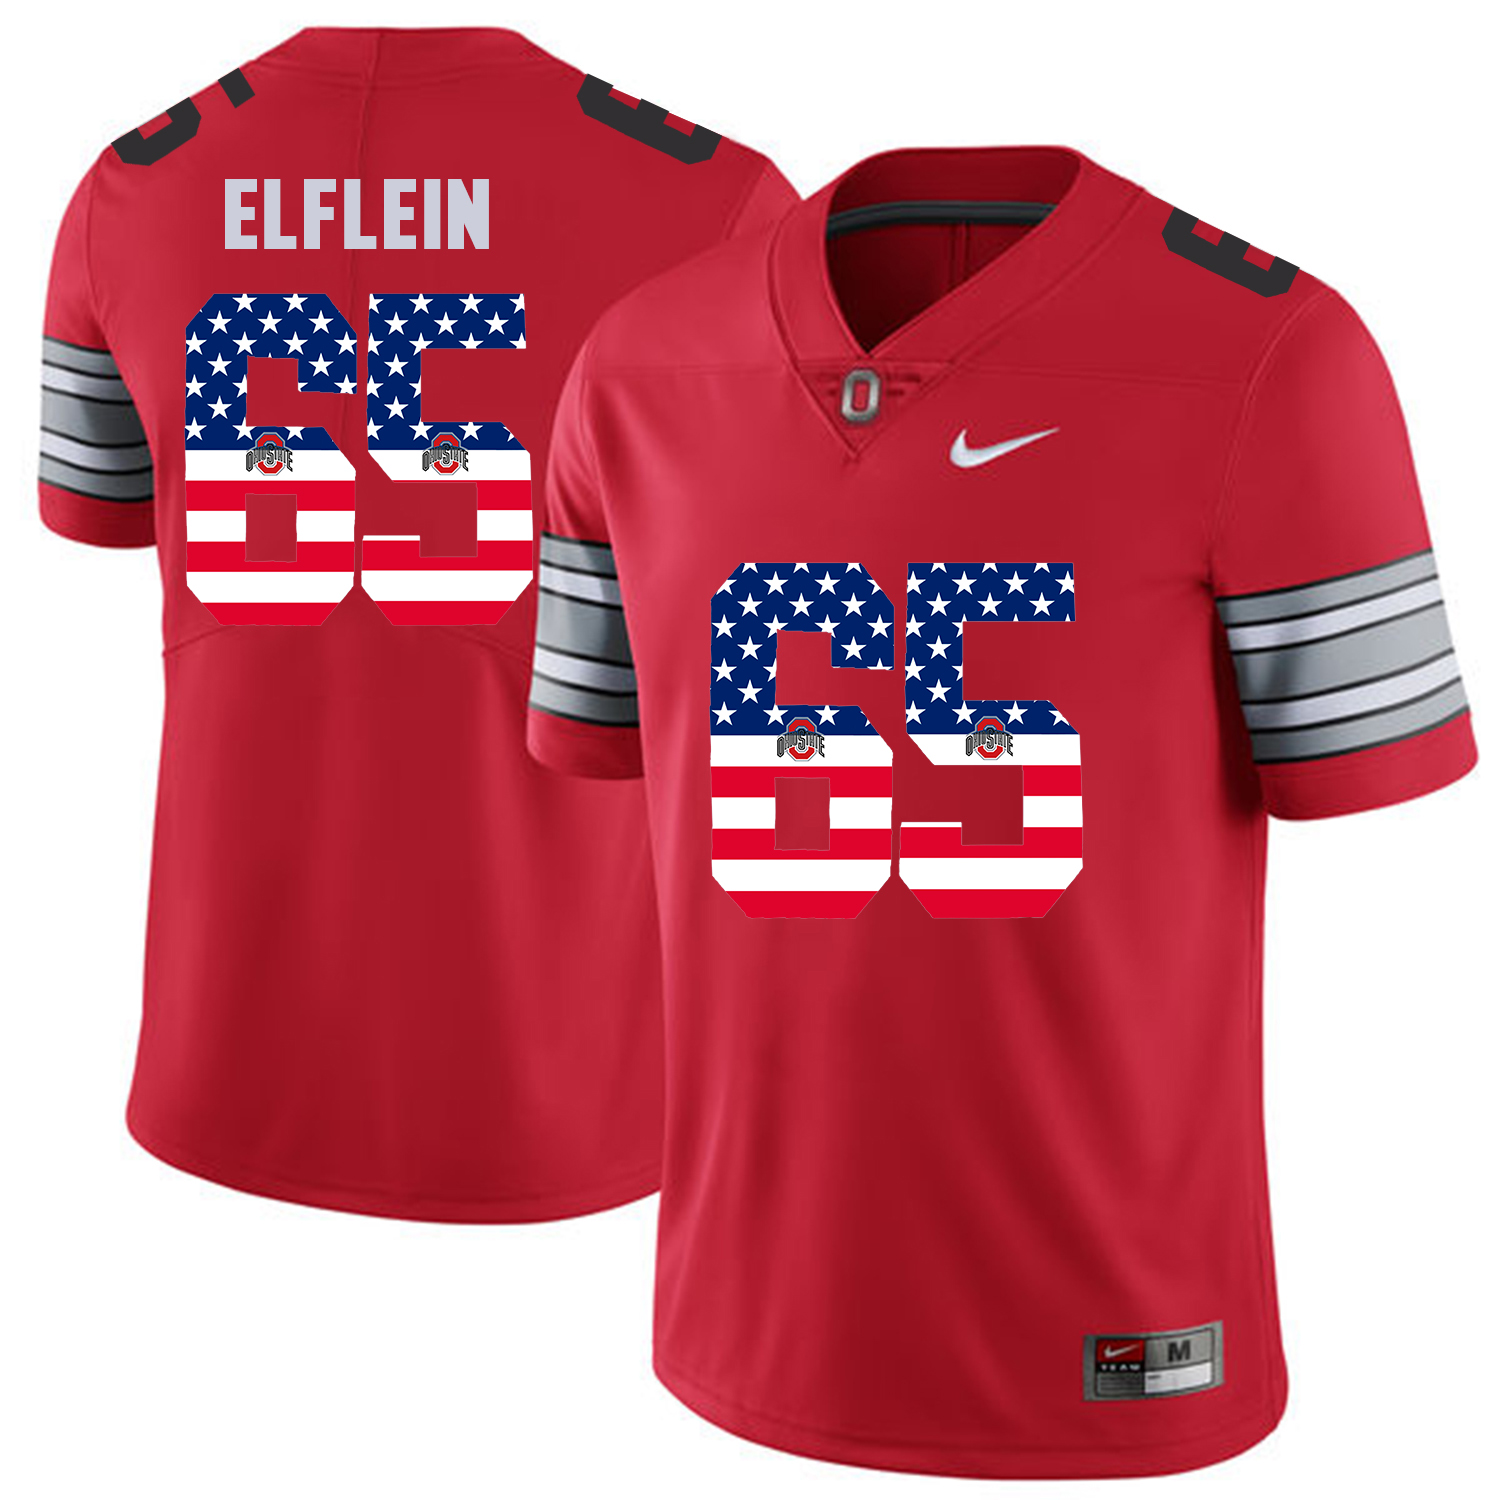 Men Ohio State 65 Elflein Red Flag Customized NCAA Jerseys